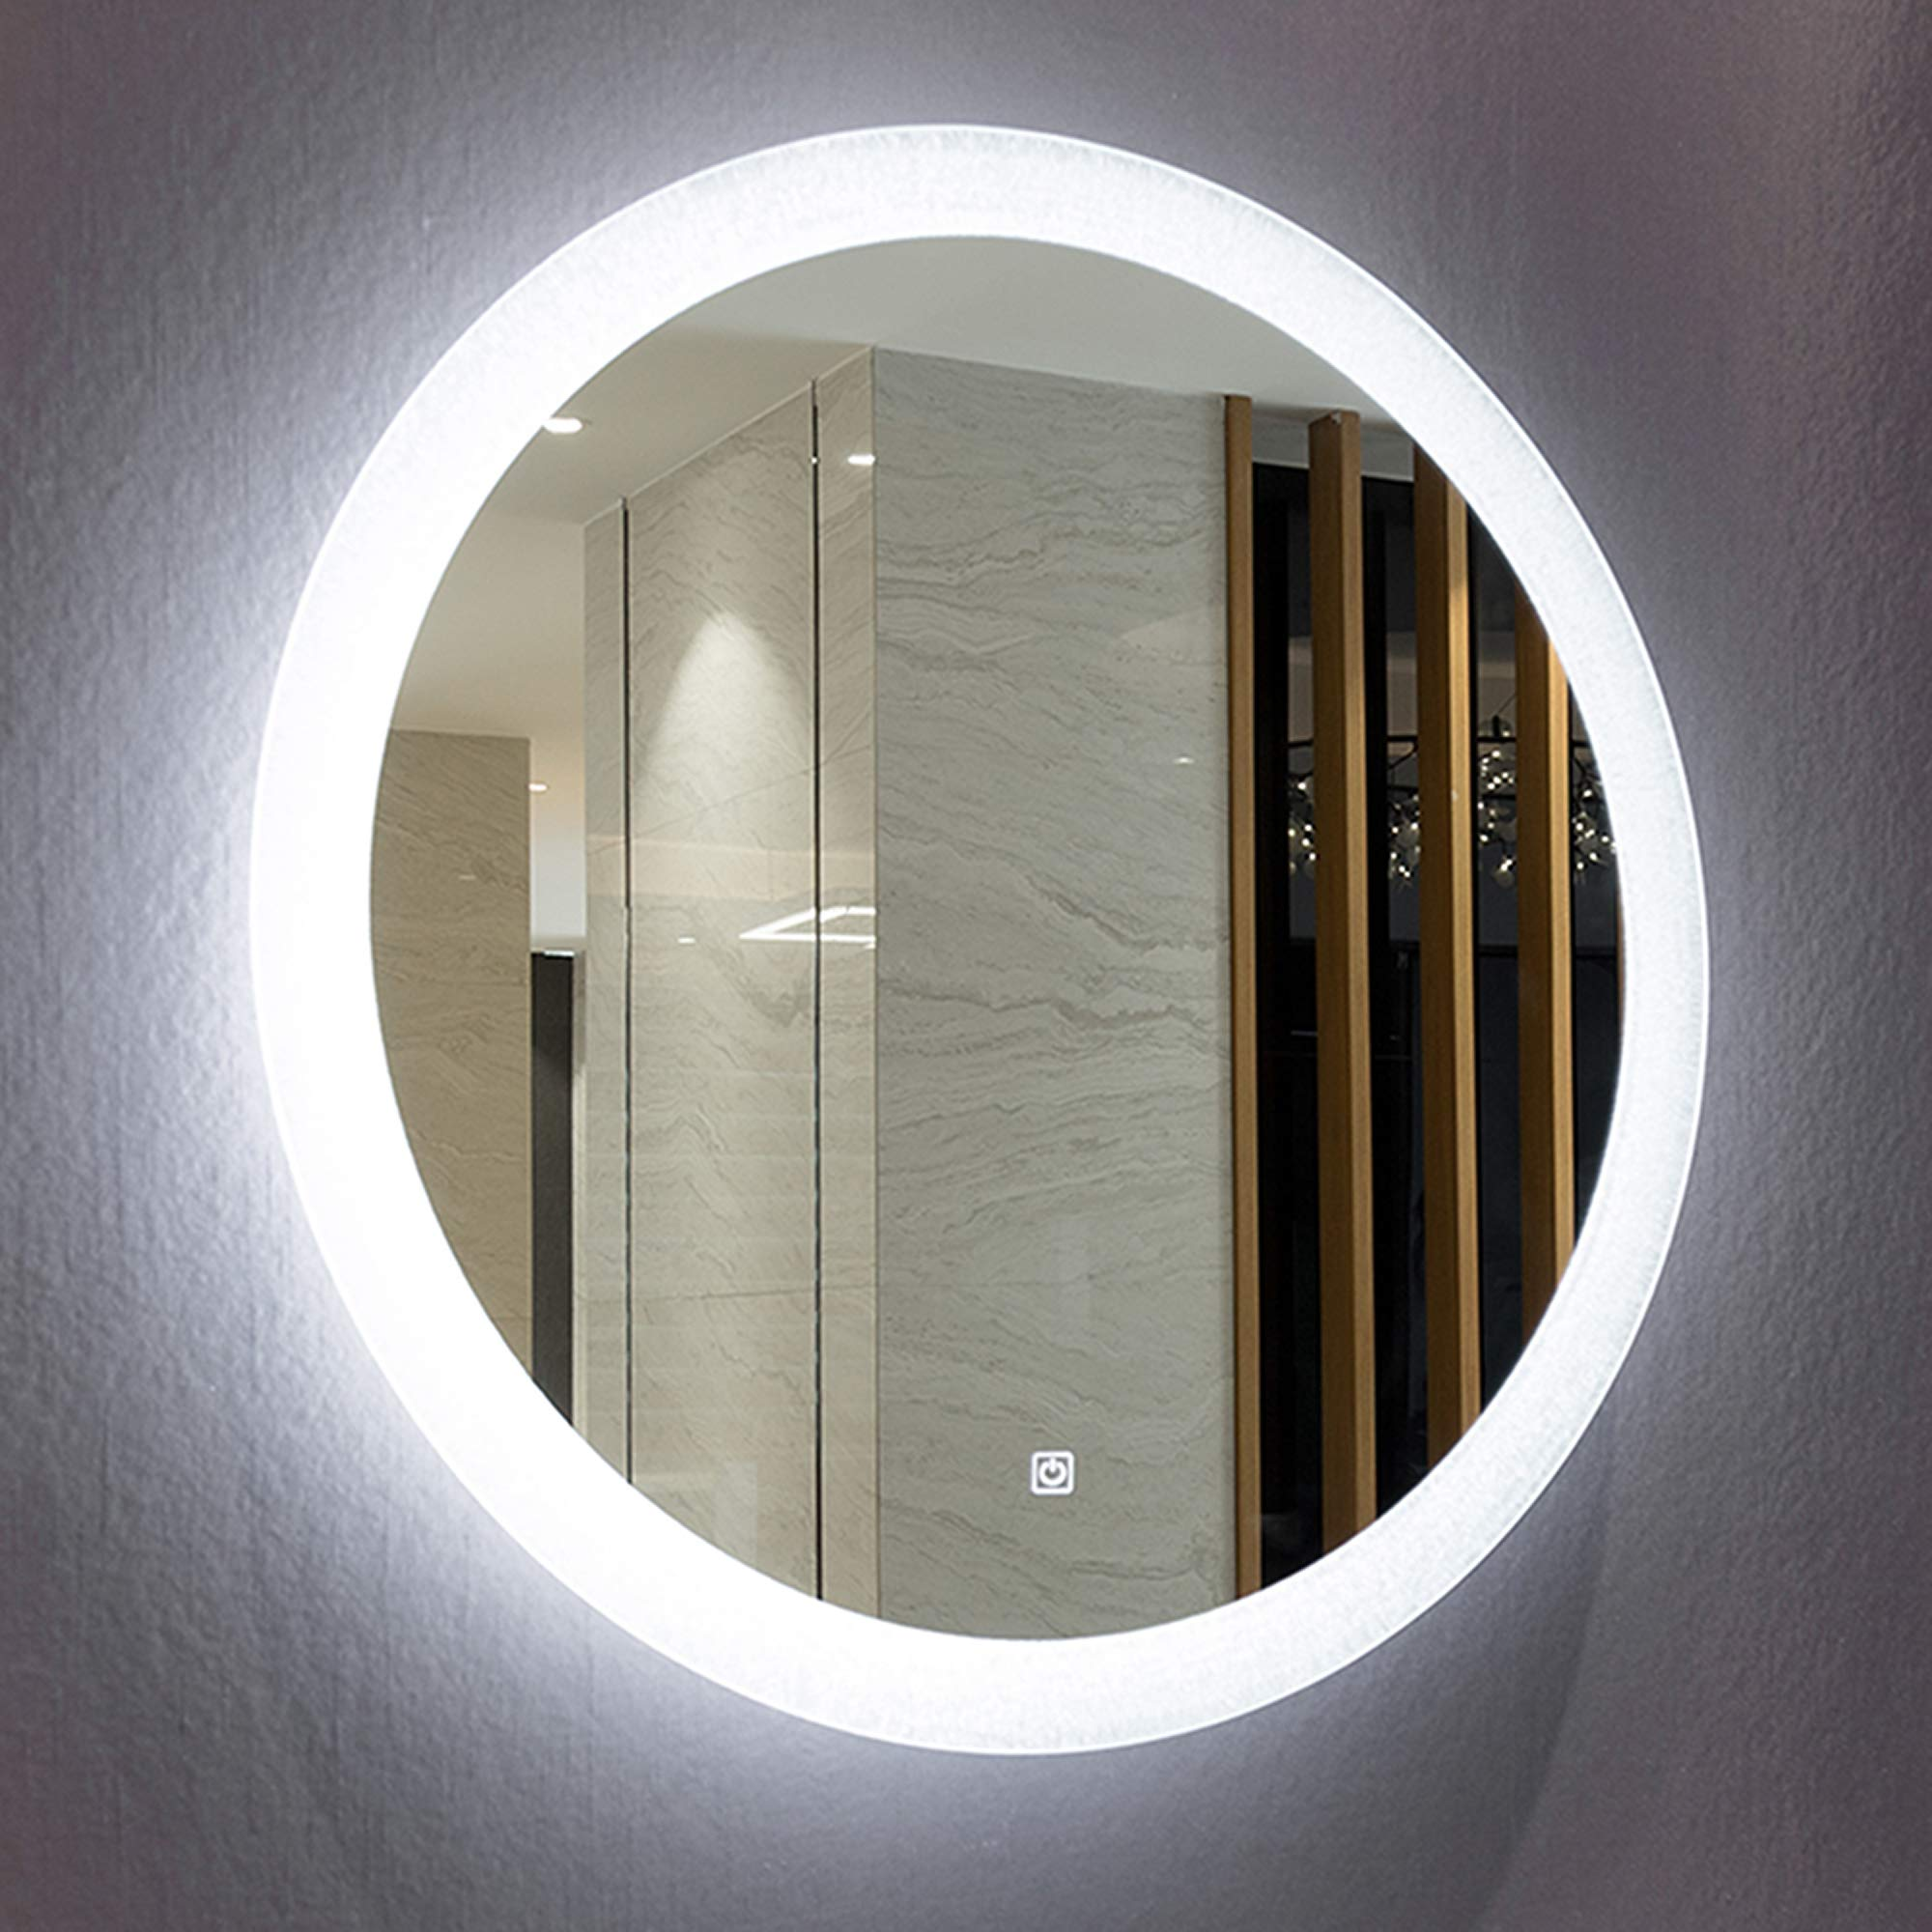 Mirrors and More LED Backlit Wall Mirror | Frameless Polished Edge Silver Backing with a Round Illuminated Frosted Strip | Vanity | Bathroom | Makeup | 24'' Diameter